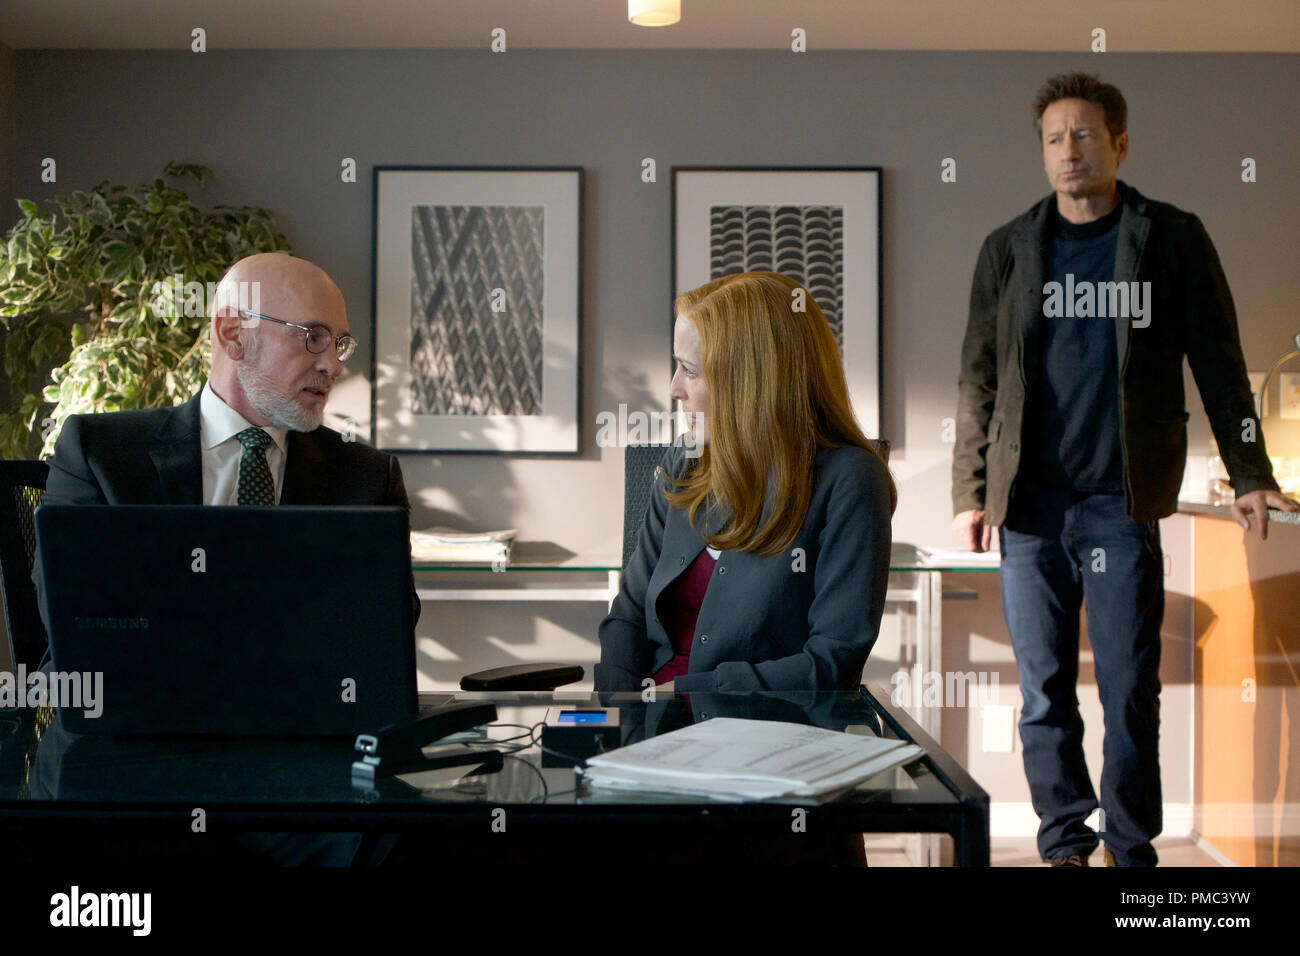 THE X-FILES:  L-R:  Mitch Pileggi, Gillian Anderson and David Duchovny in the 'Kitten' episode of THE X-FILES on Fox. © 2018 Fox Broadcasting Co.  Cr:  Shane Harvey/Fox - Stock Image